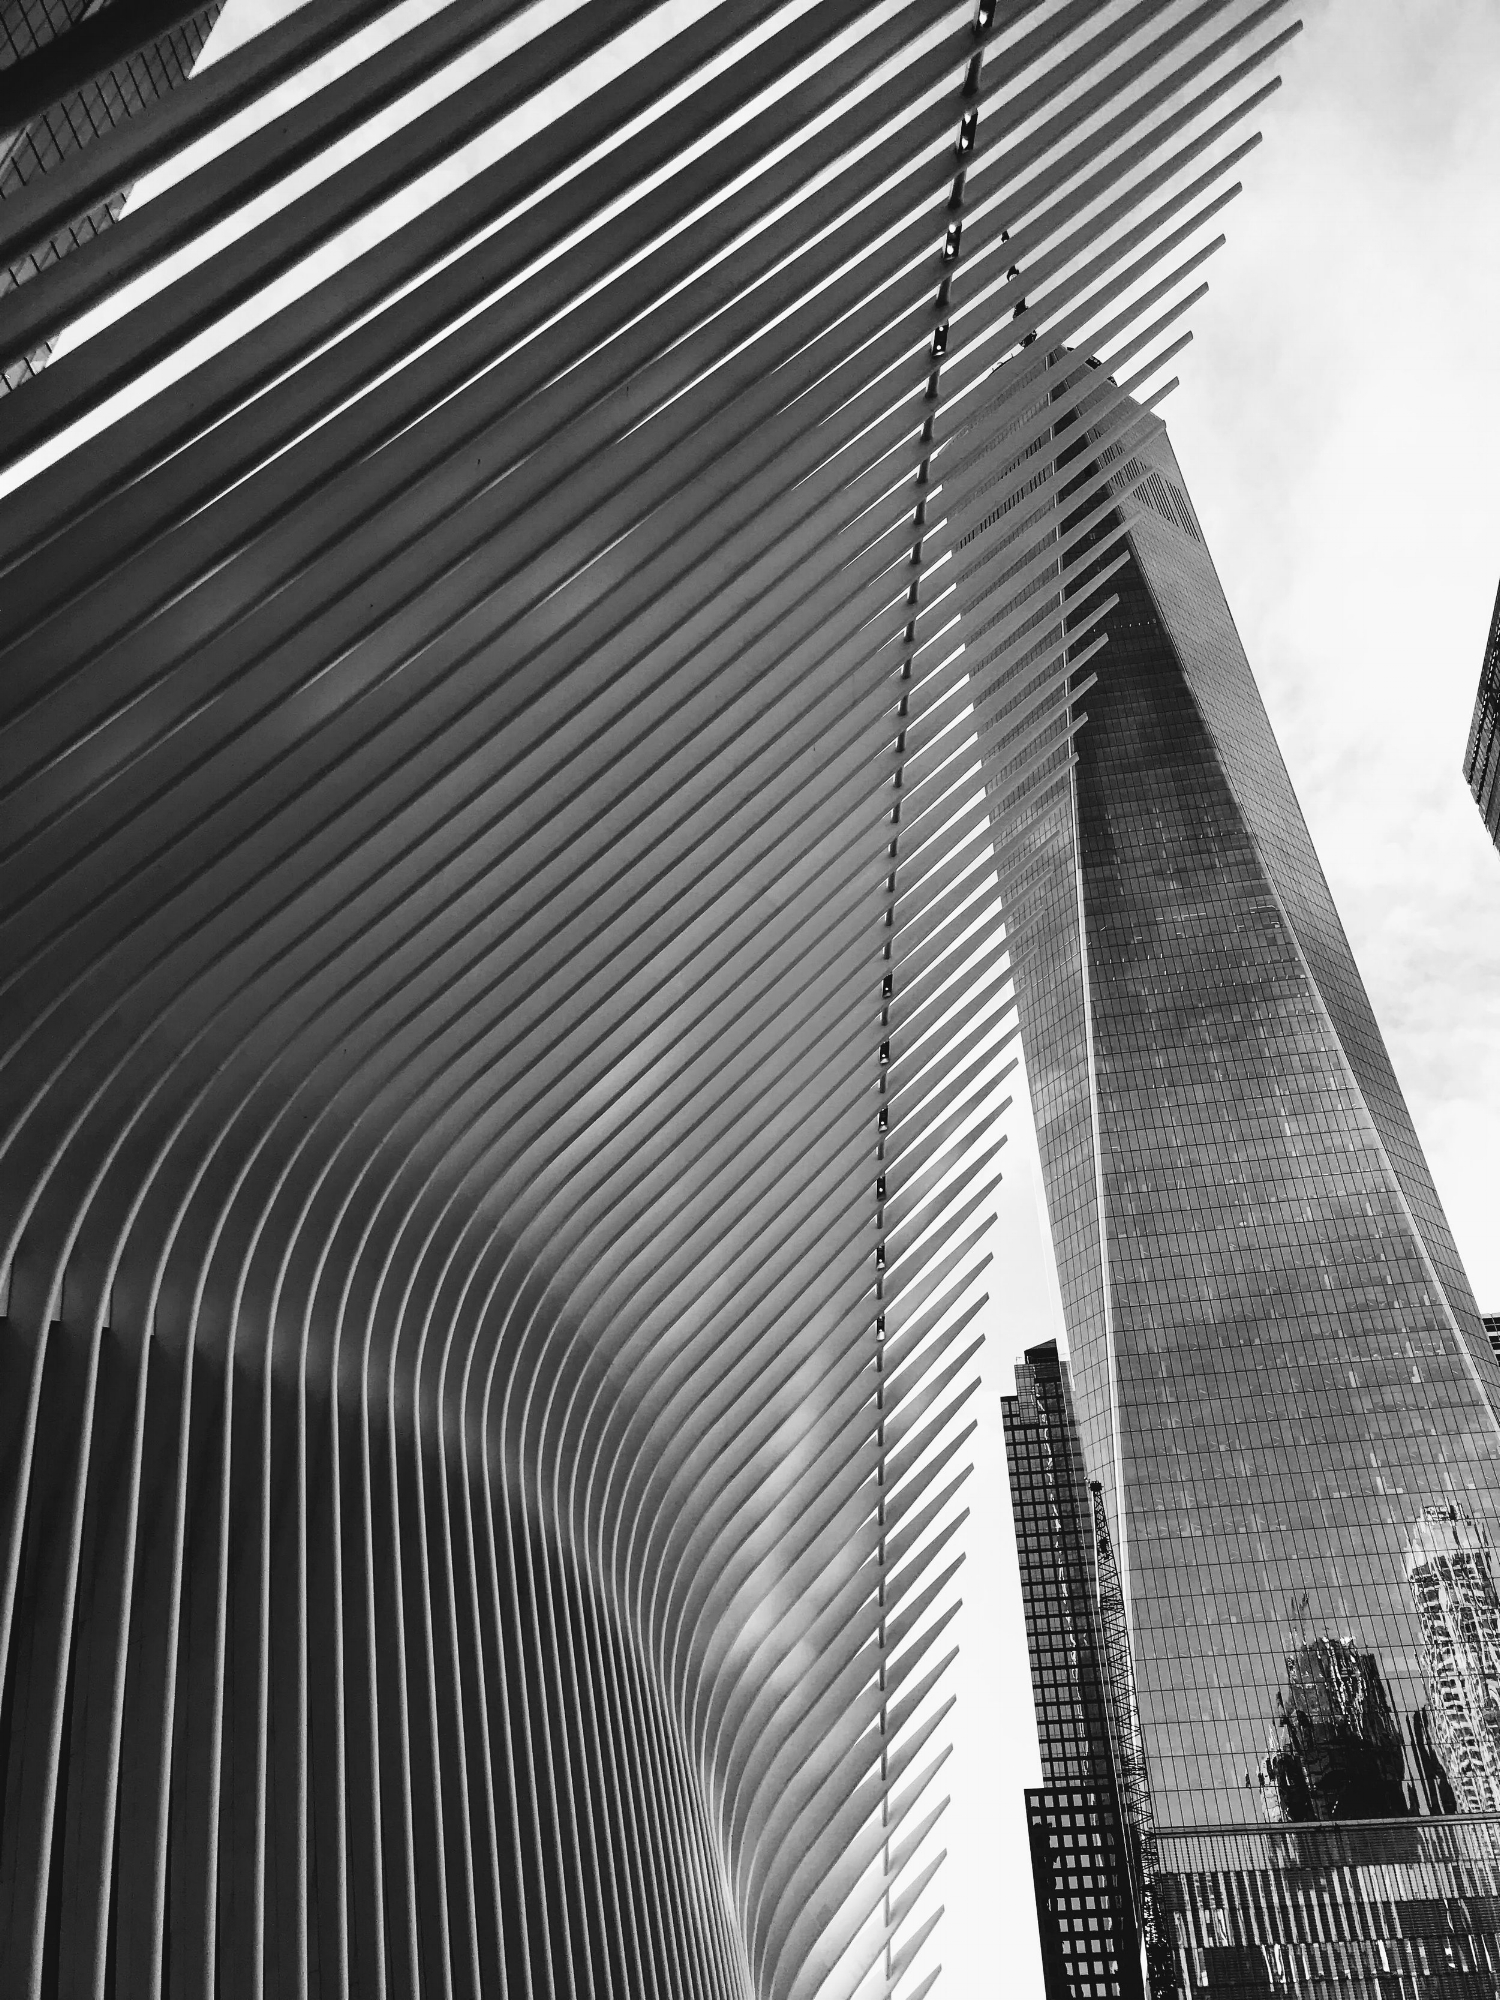 Outside the Oculus, in the shadow of the Freedom Tower.